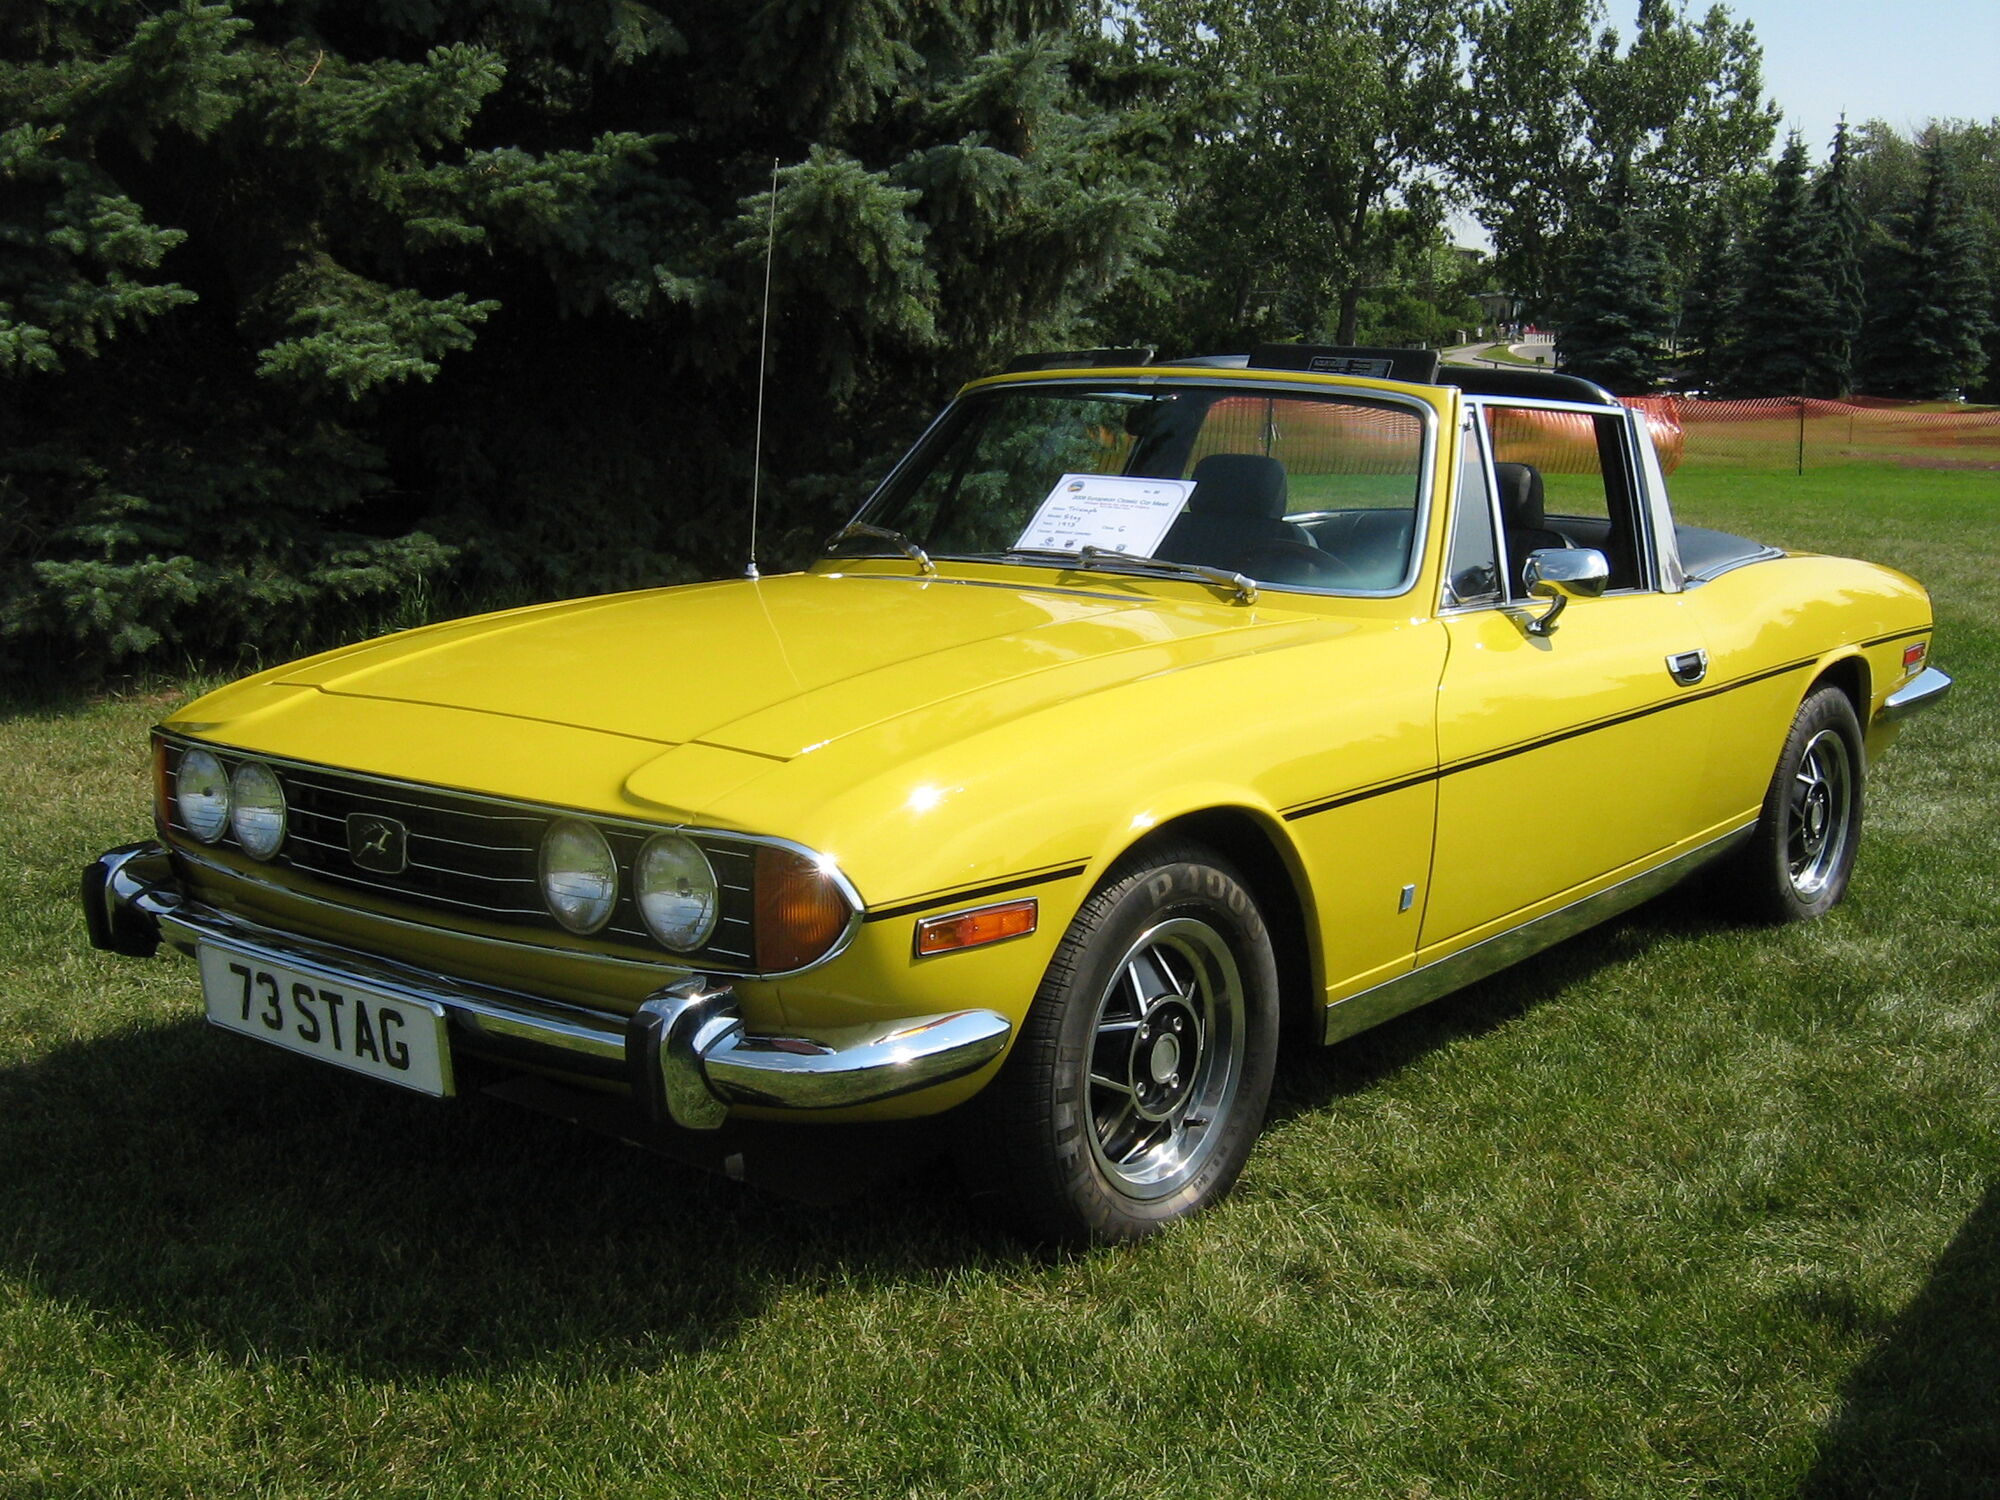 Triumph Stag   Tractor & Construction Plant Wiki   FANDOM powered by ...